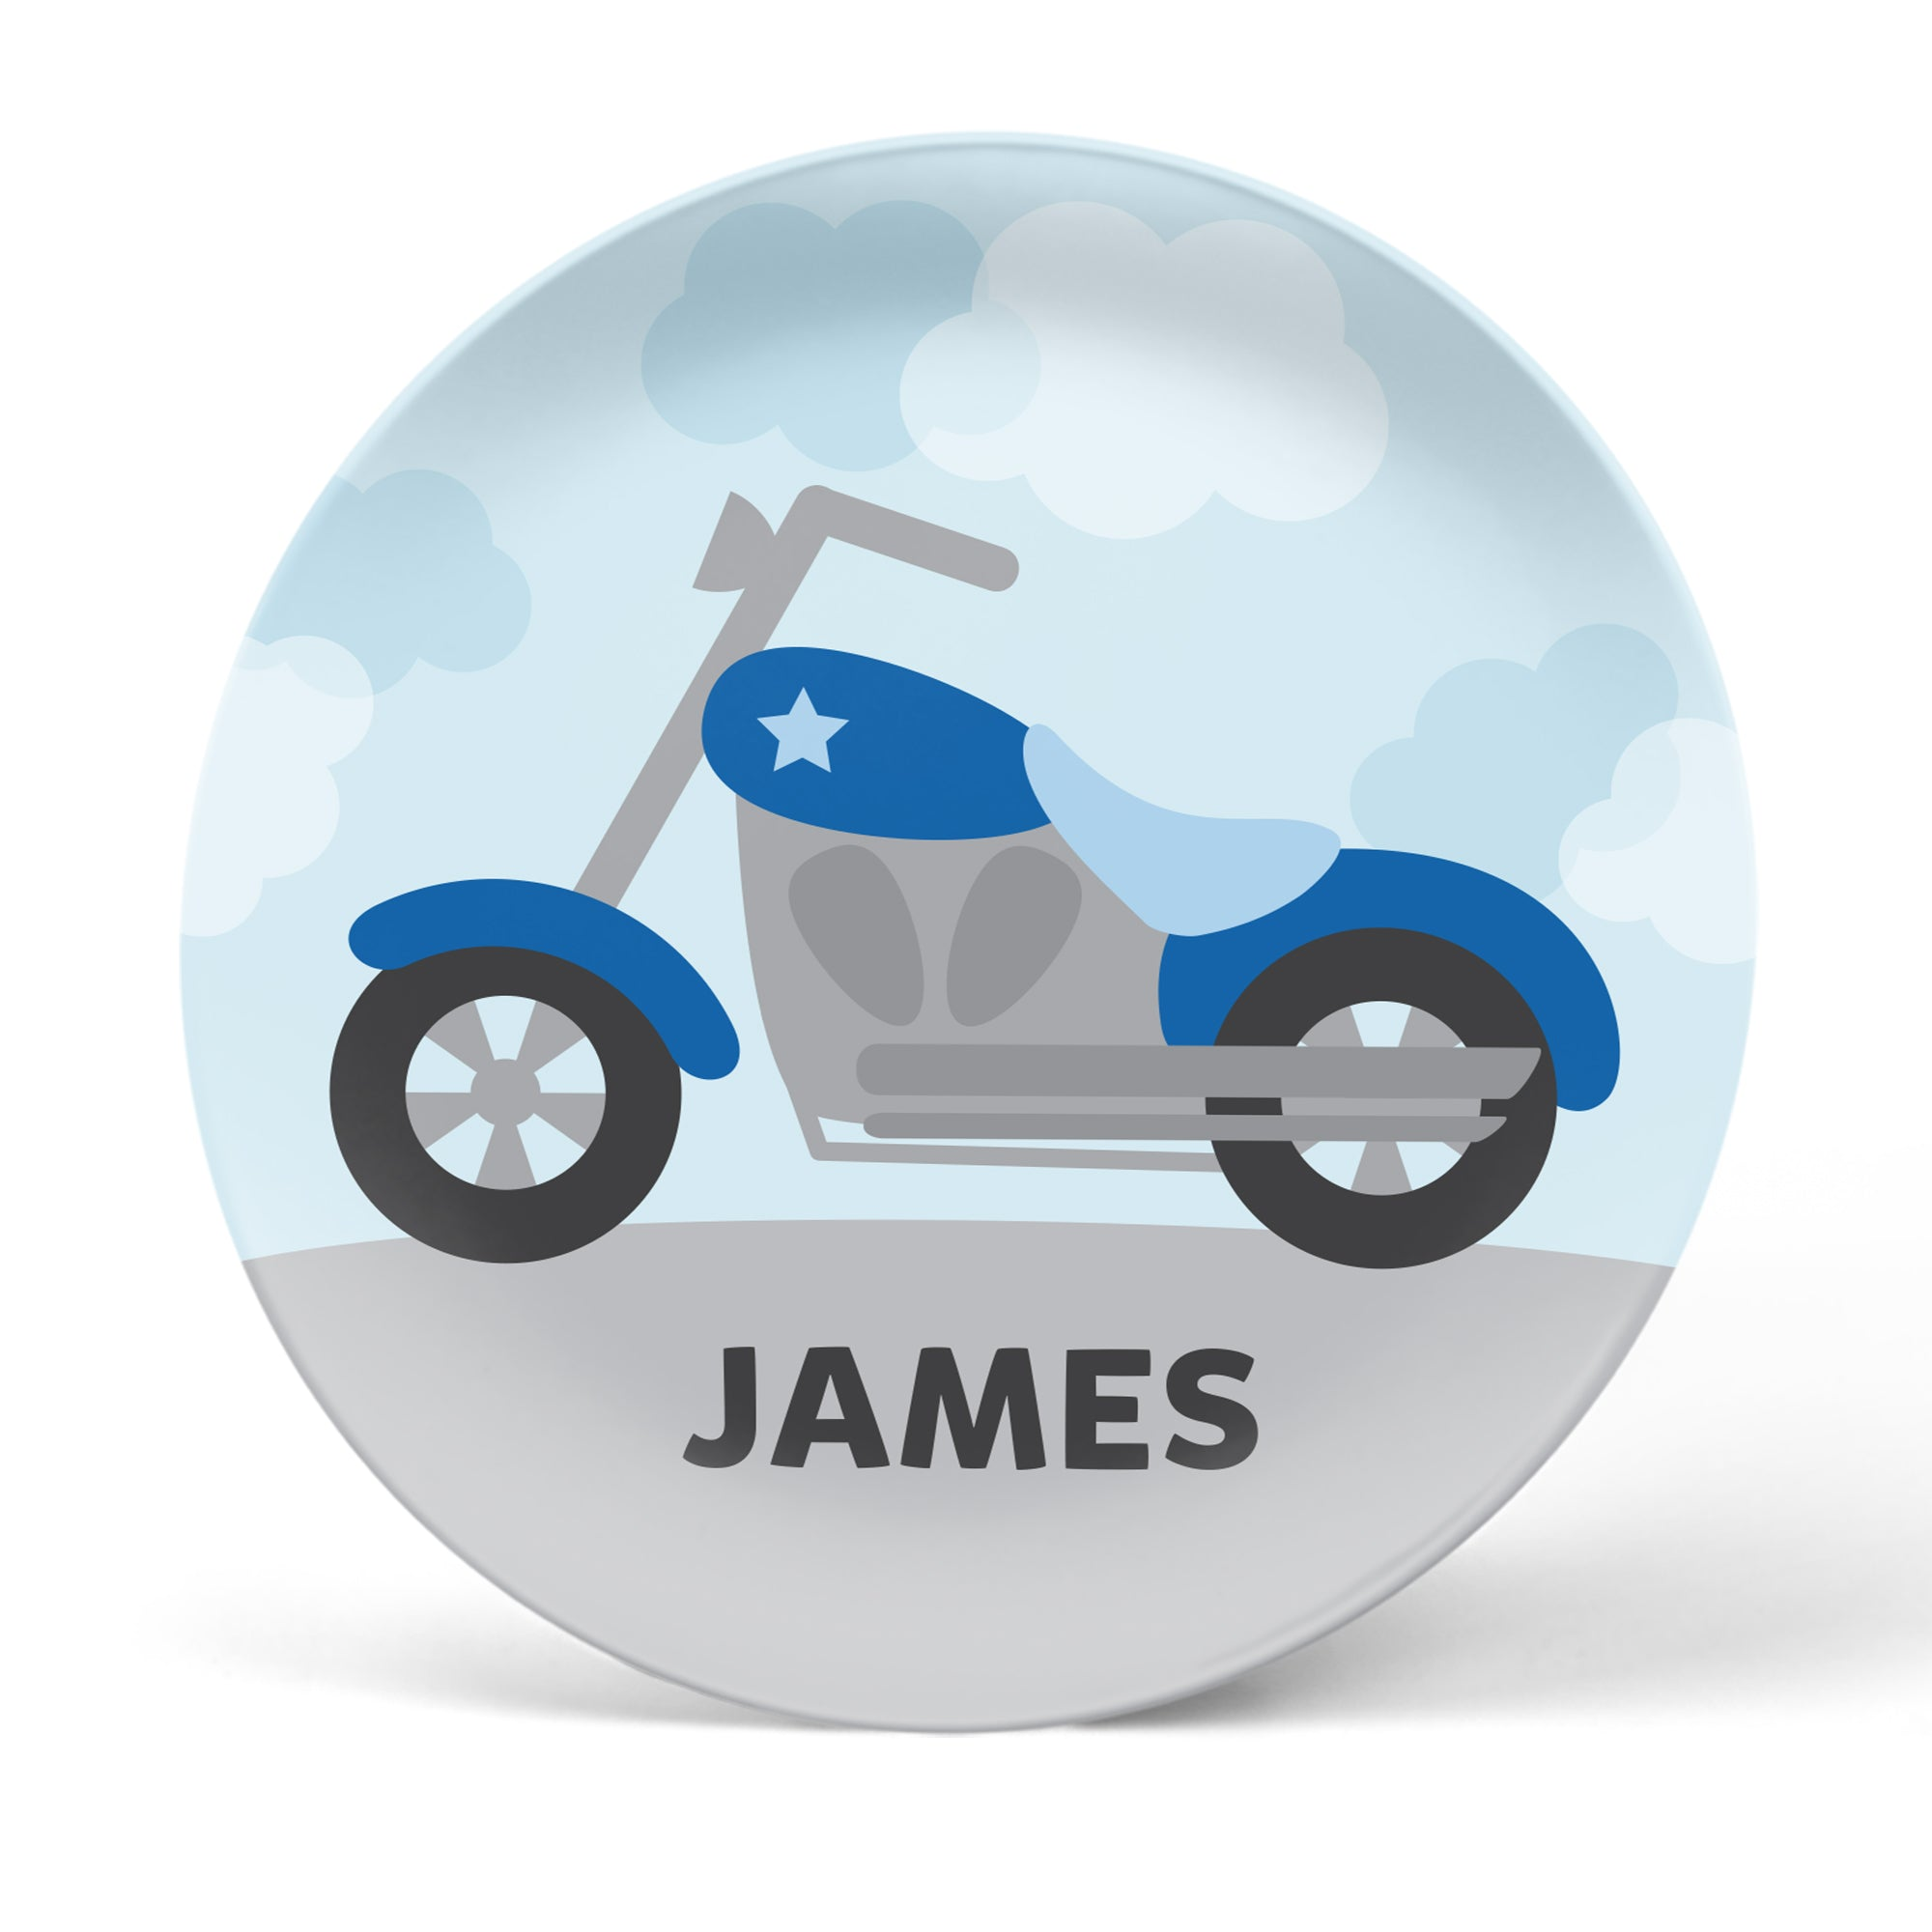 Motorcycle Personalized Plate